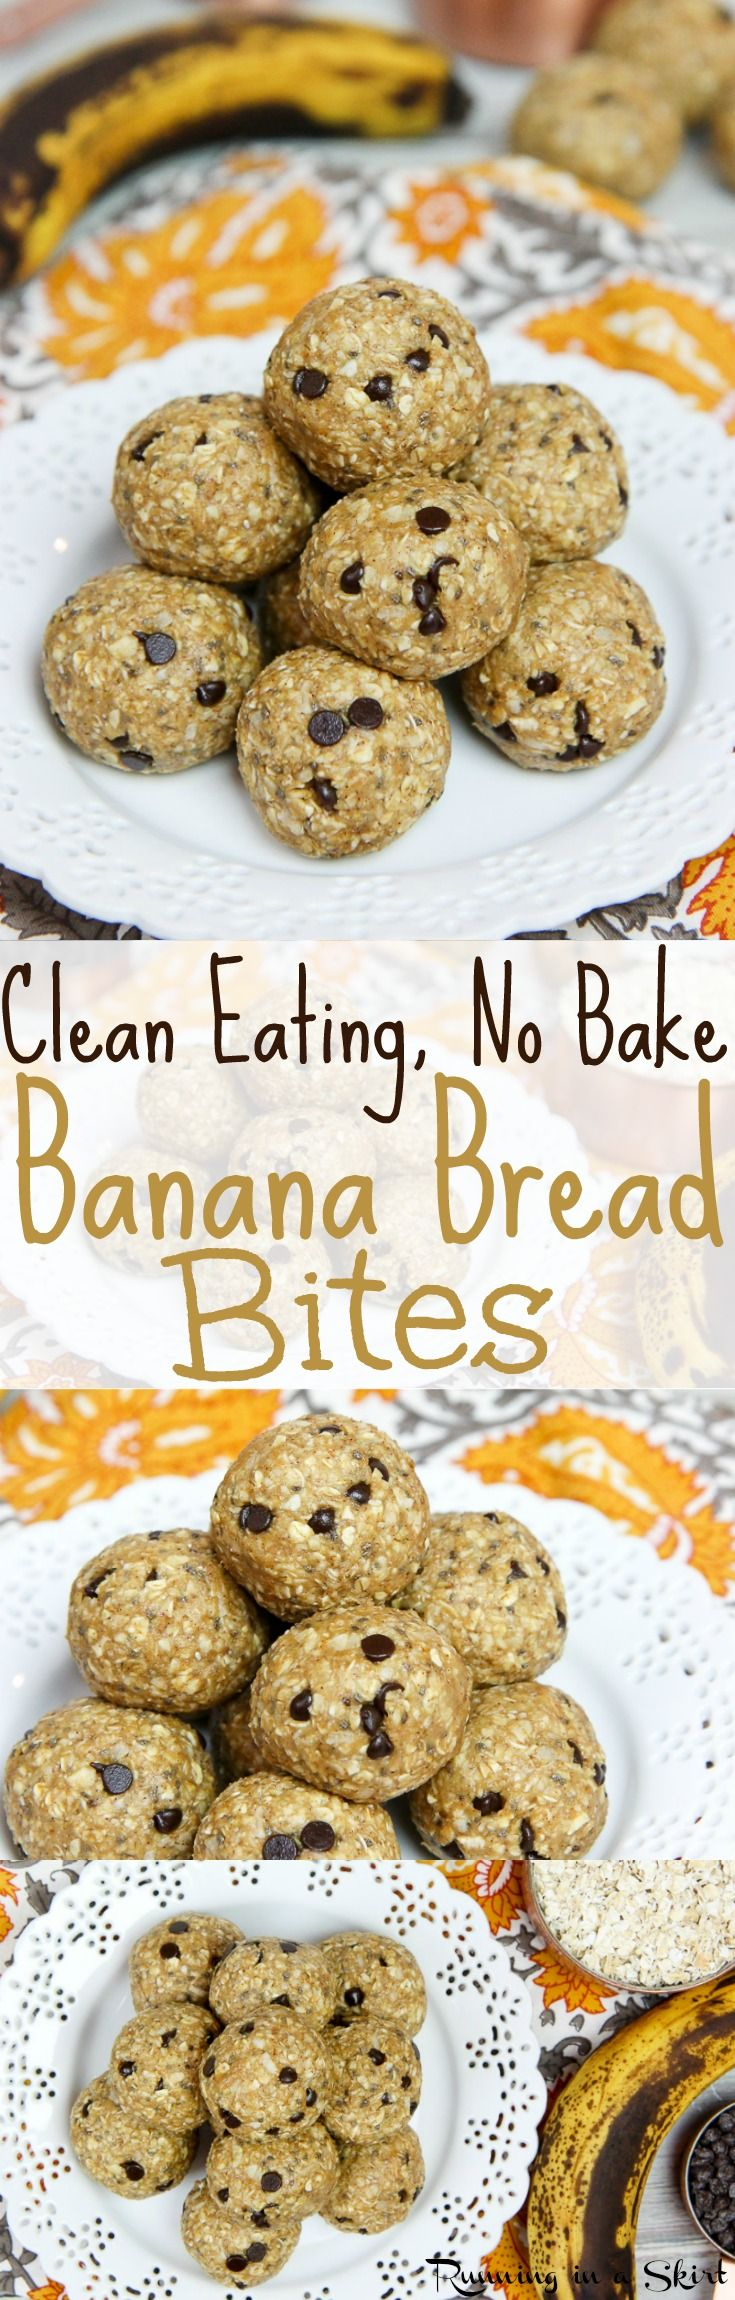 Clean Eating No Bake Banana Bread Bites recipe with chocolate chips!  With peanut butter, coconut, cinnamon and chia seeds.  Nut free, vegan, paleo friendly and no added refined sugar other than the chocolate chips!  A perfect healthy snack and great way to used over-ripe bananas! / Running in a Skirt via @juliewunder